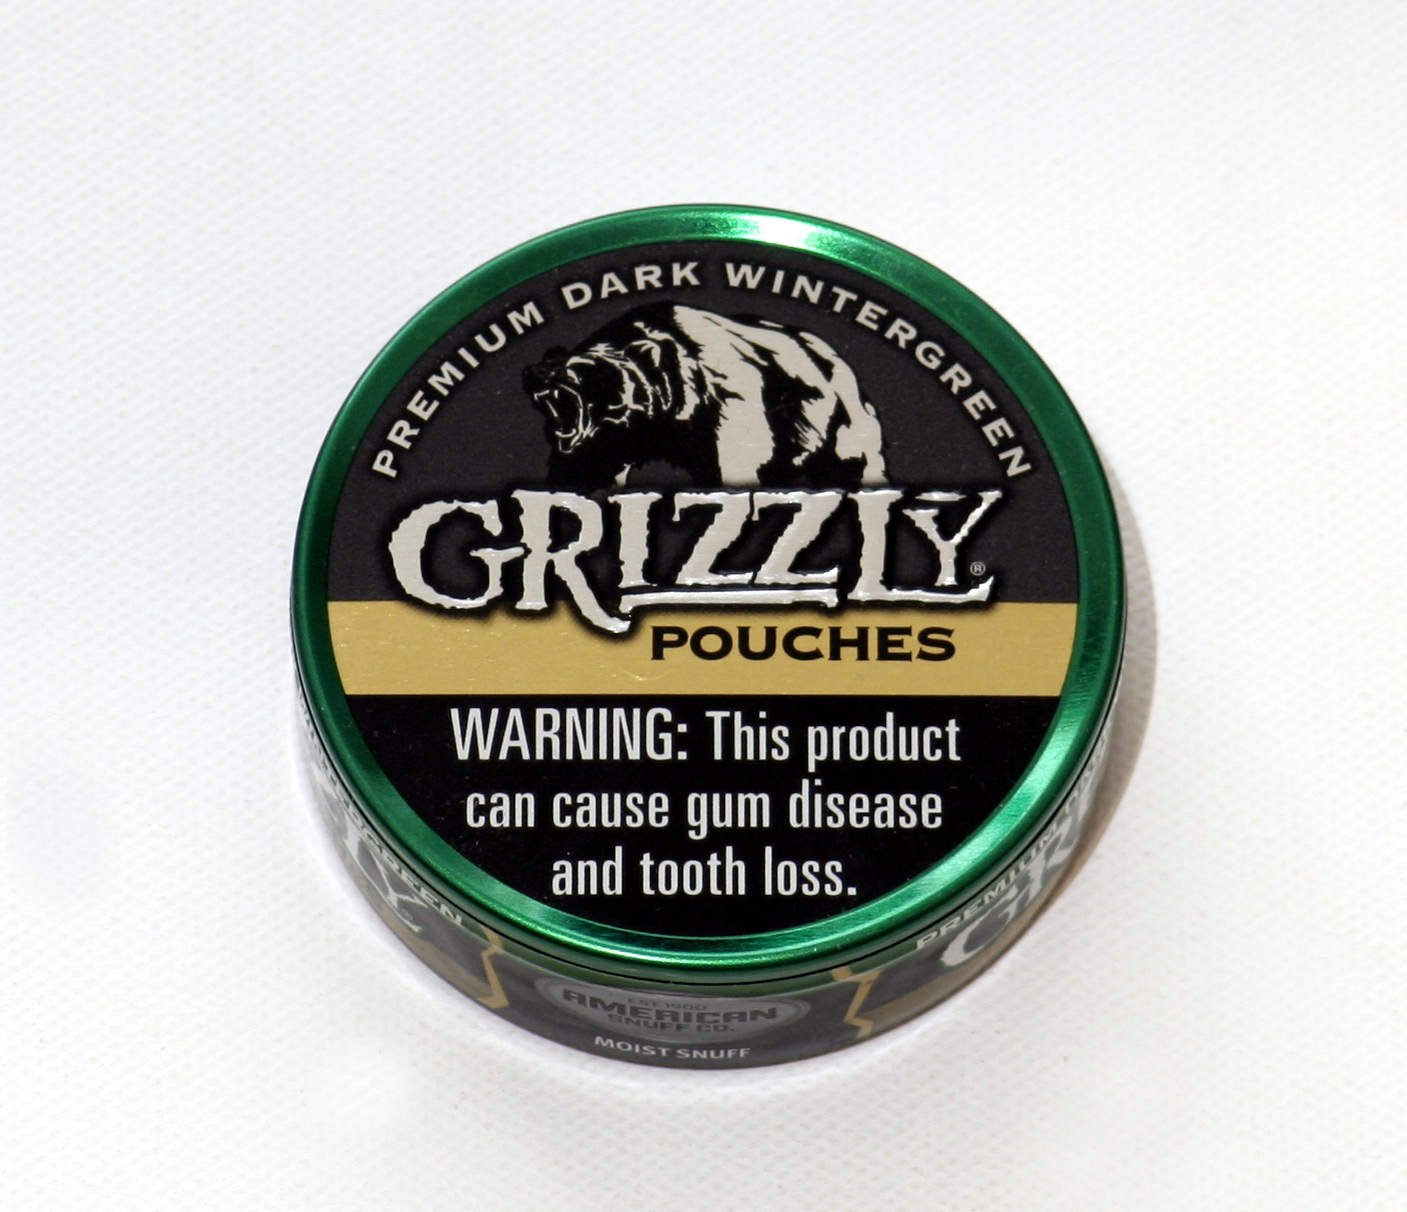 Grizzly Dark Wintergreen Pouches Review The Northerner Blog